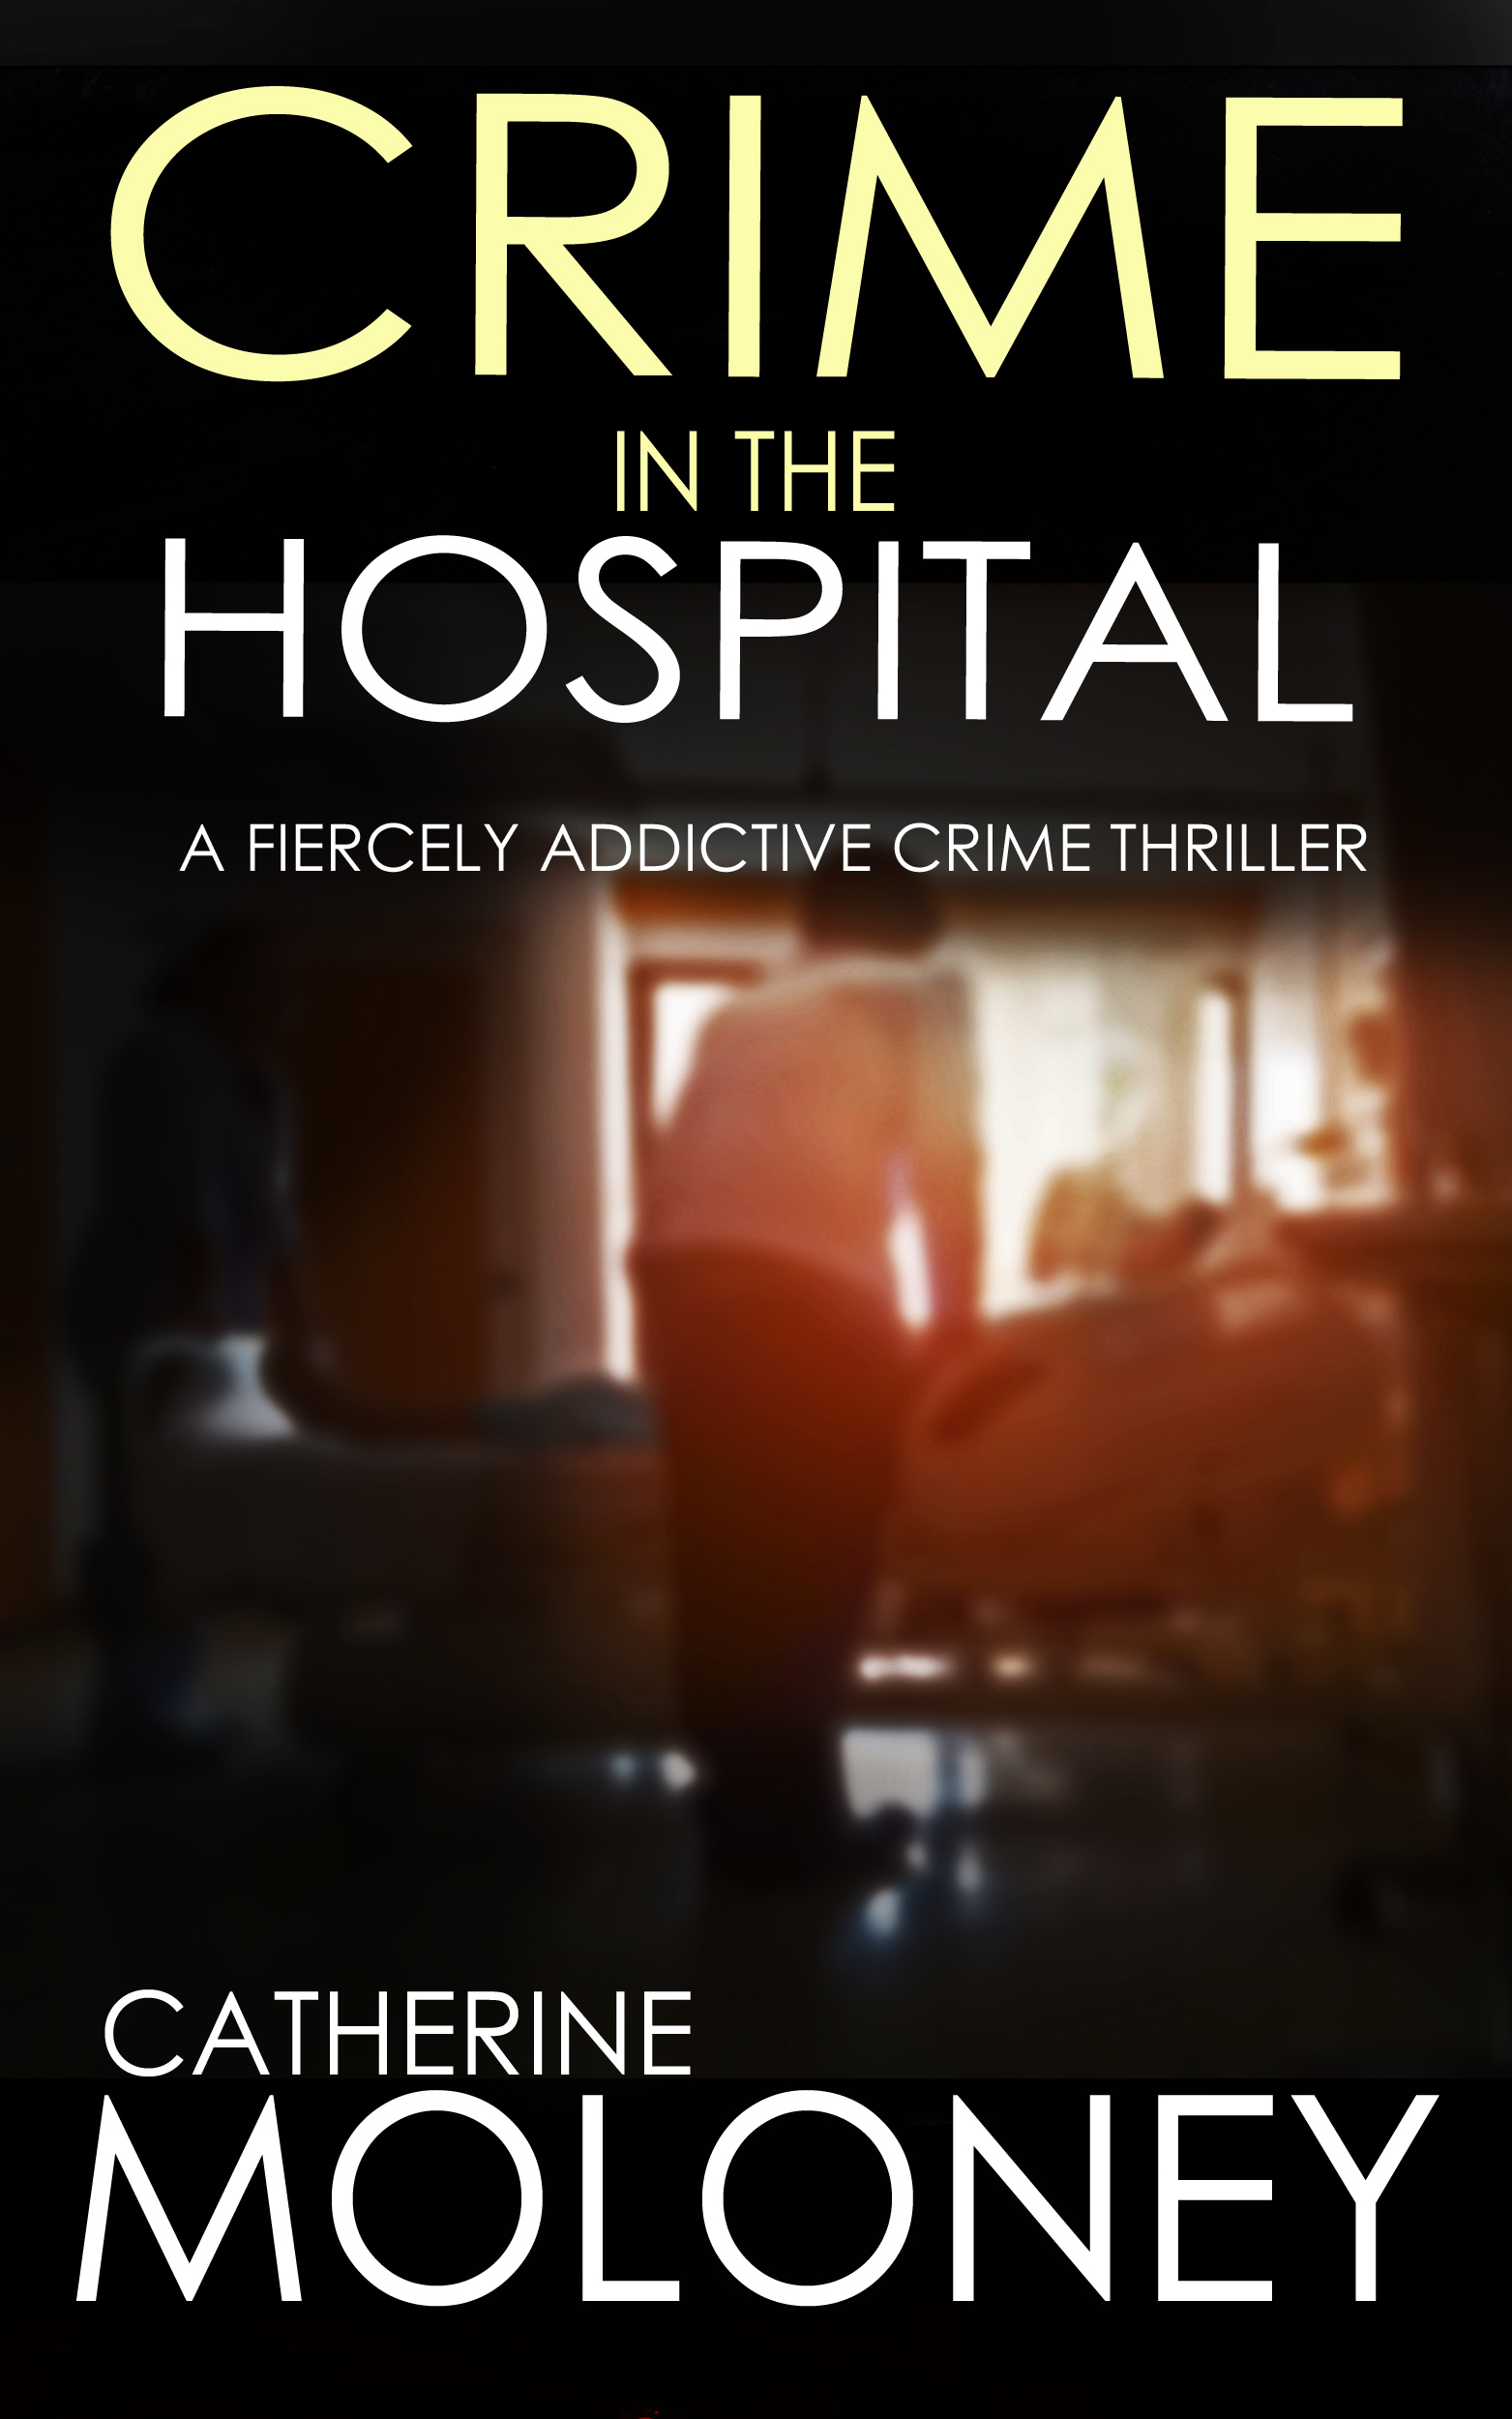 CRIME IN THE HOSPITAL.jpg